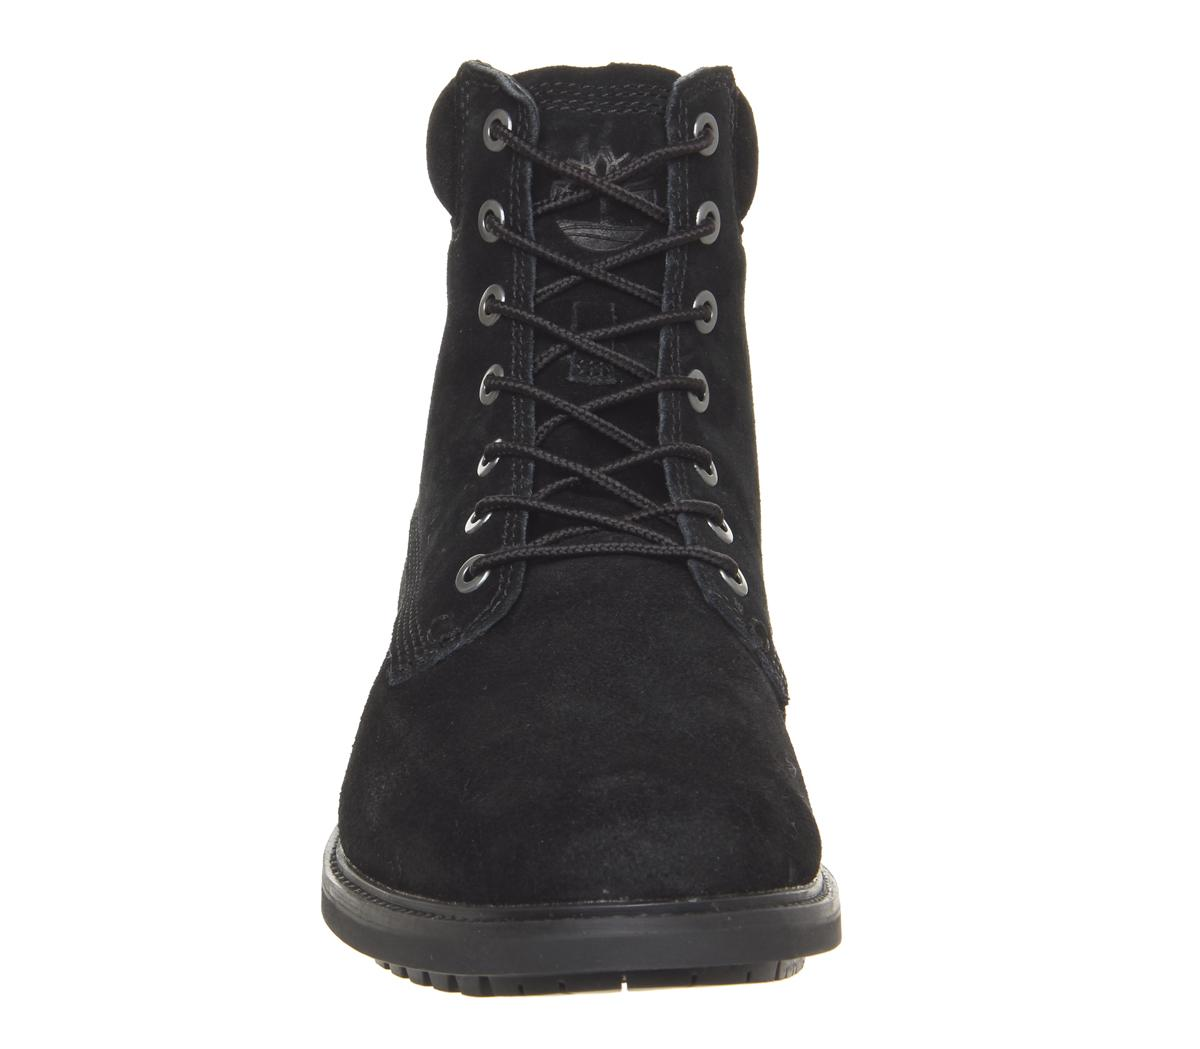 Timberland Mens Slim Boots Black Suede